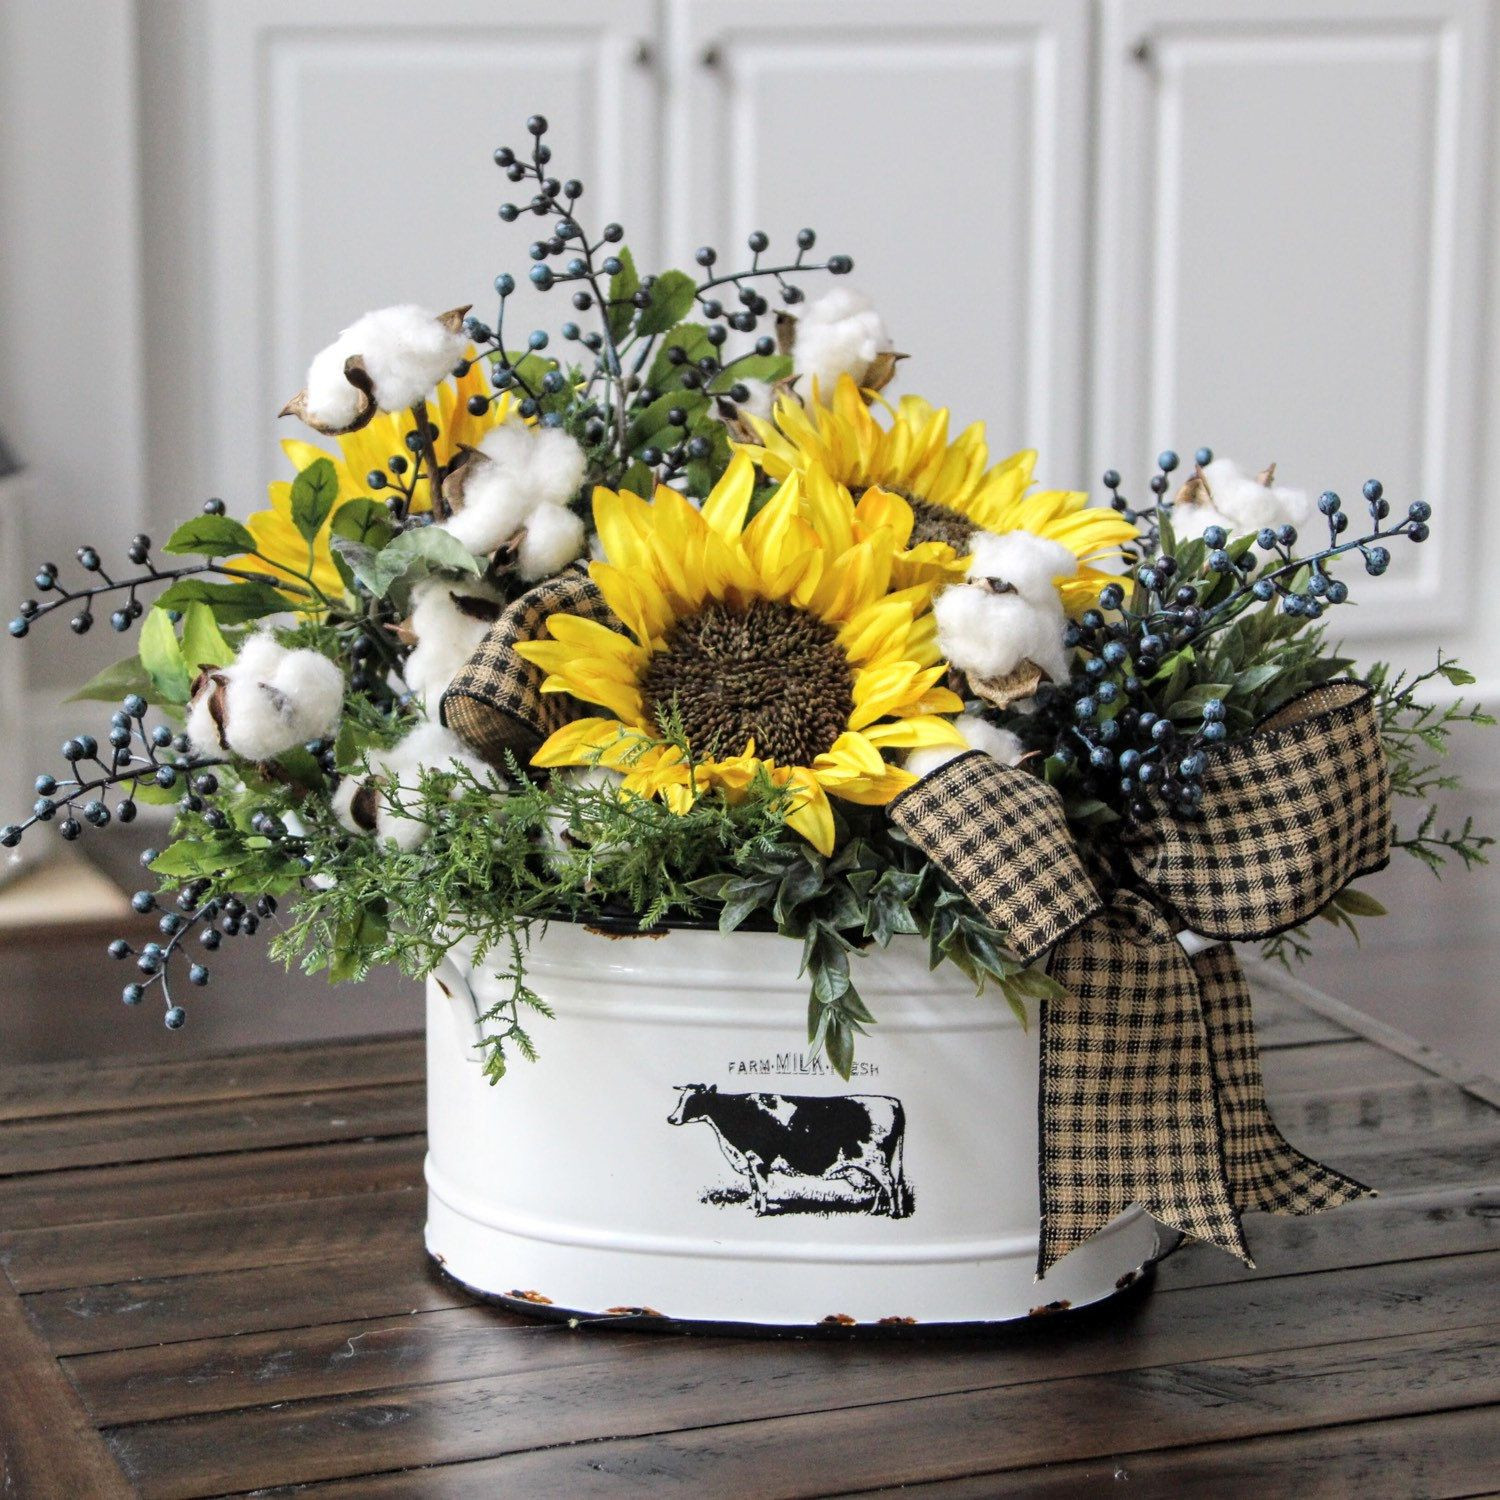 cotton in vase of attractive sunflower decor for kitchen or farmhouse decor country throughout attractive sunflower decor for kitchen or farmhouse decor country primitive floral arrangement